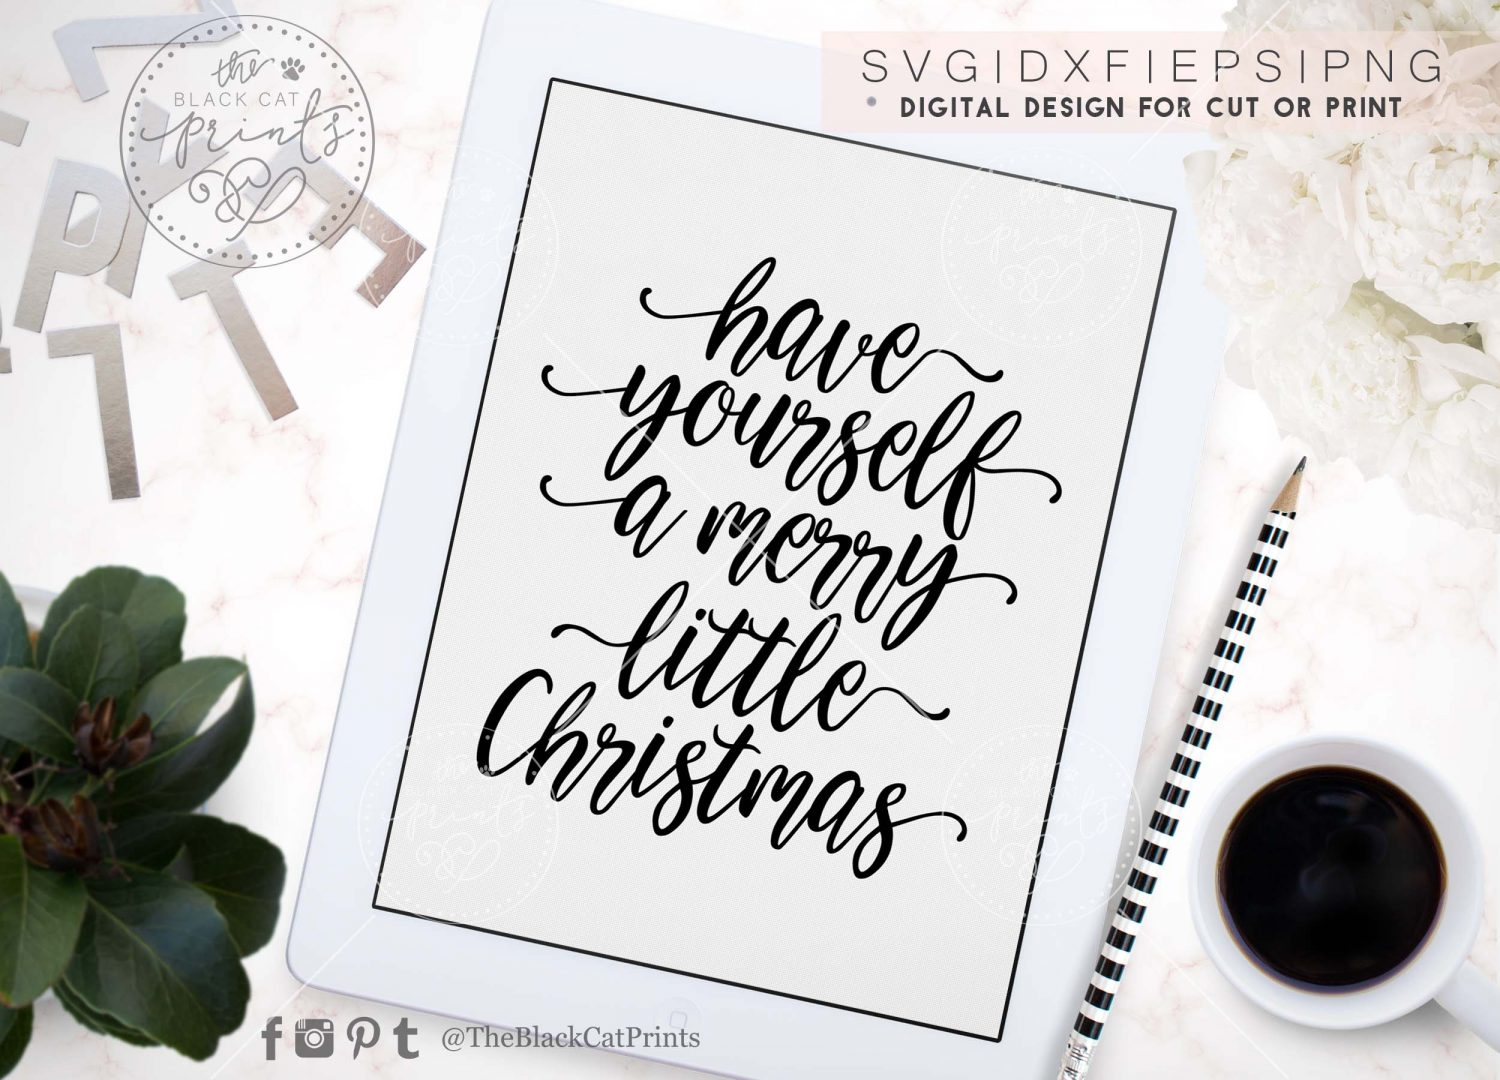 Have Yourself A Merry Little Christmas Svg.Have Yourself A Merry Little Christmas Svg Dxf Png Eps